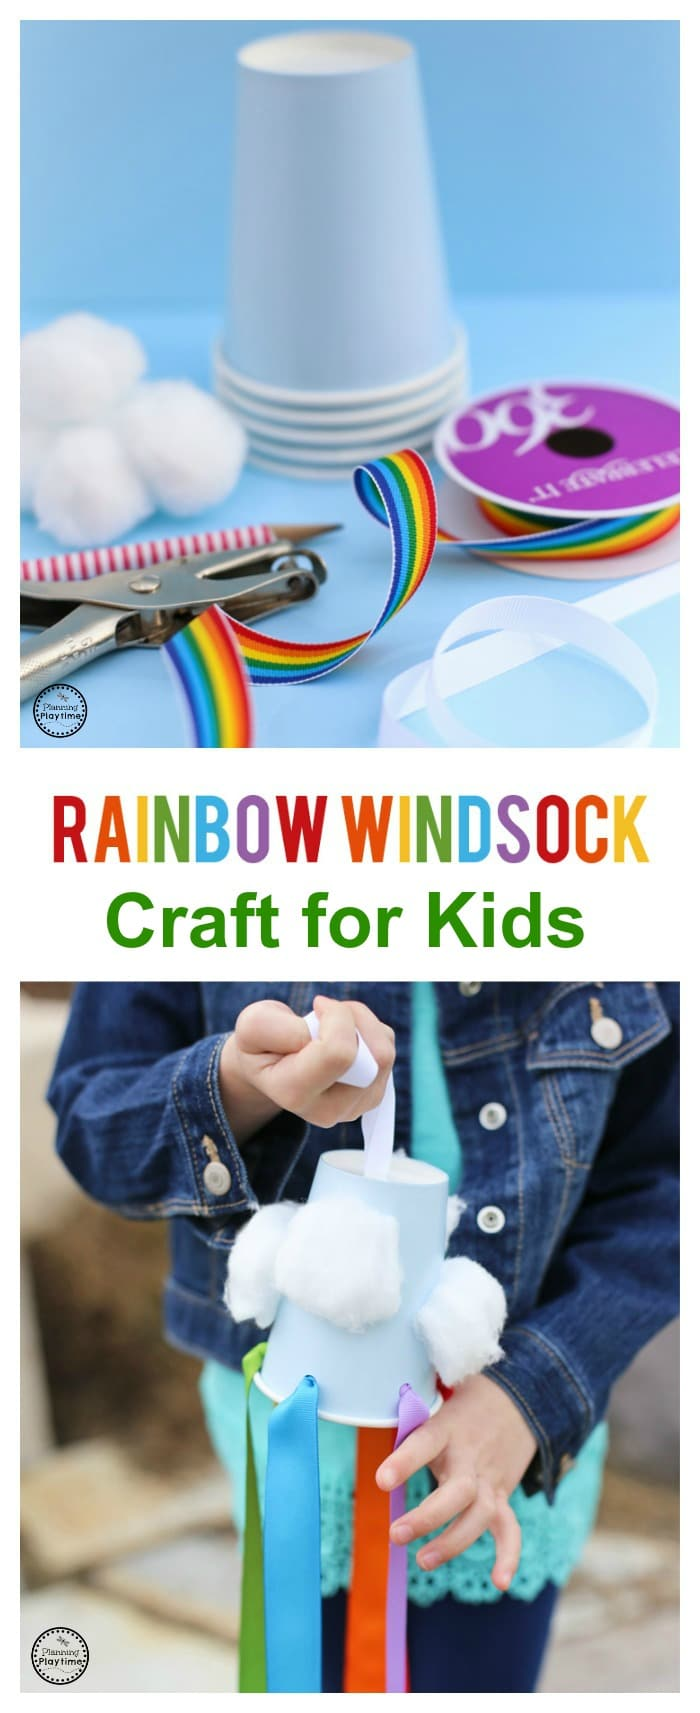 Rainbow Windsock Craft for Kids